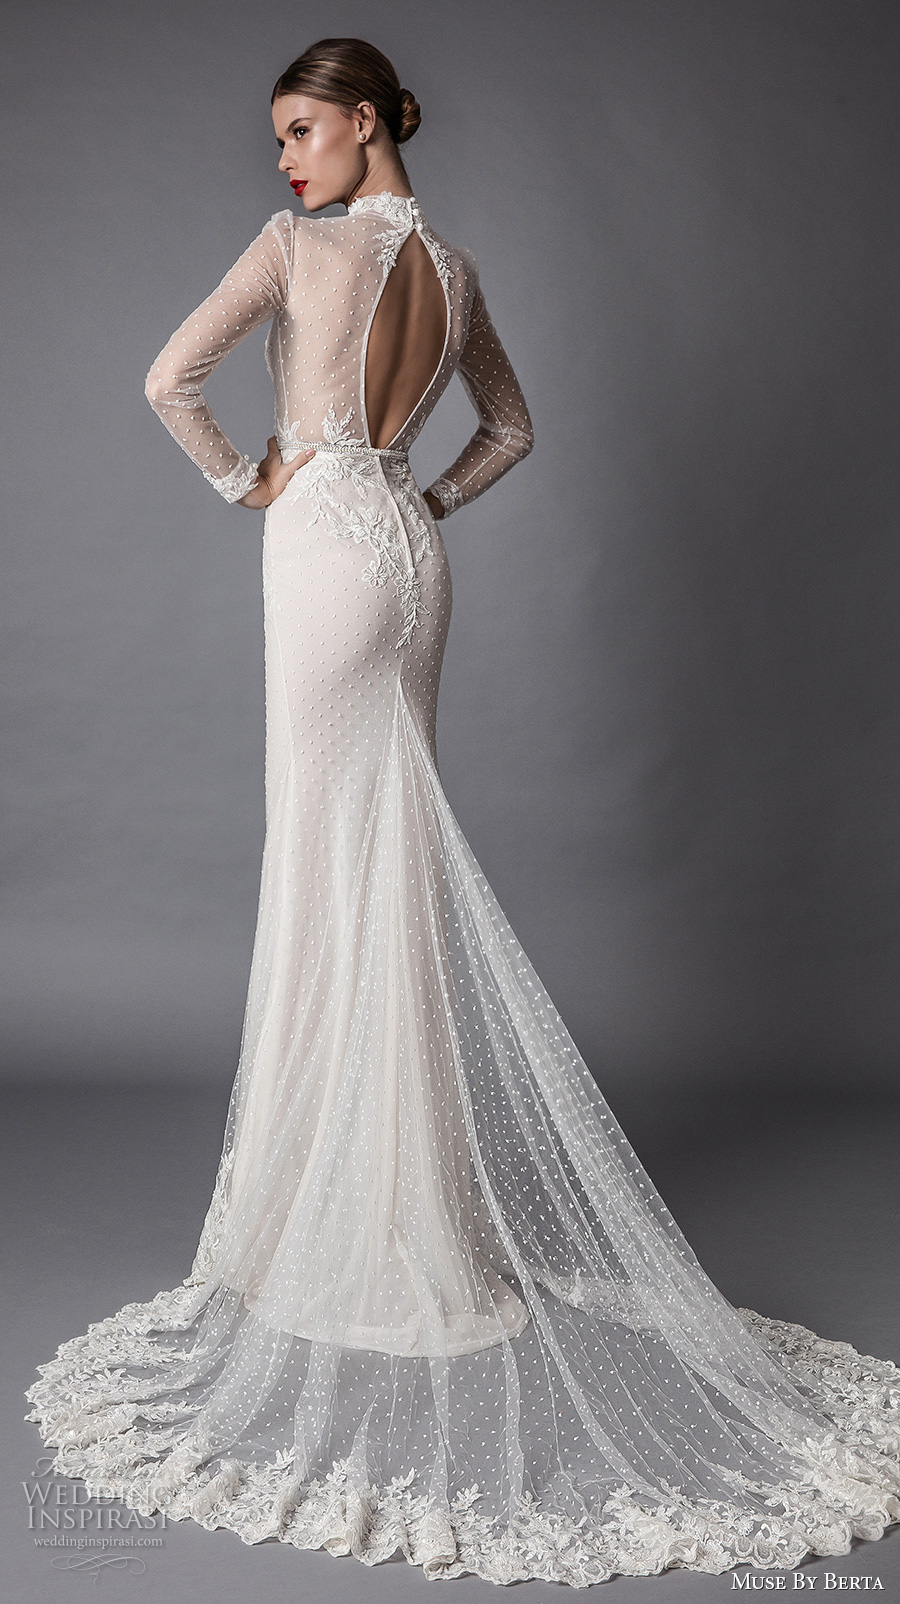 muse berta fall 2017 bridal long sleeves high neck full embellishment beaded elegant sheath wedding dress keyhole back chapel train (amadea) bv